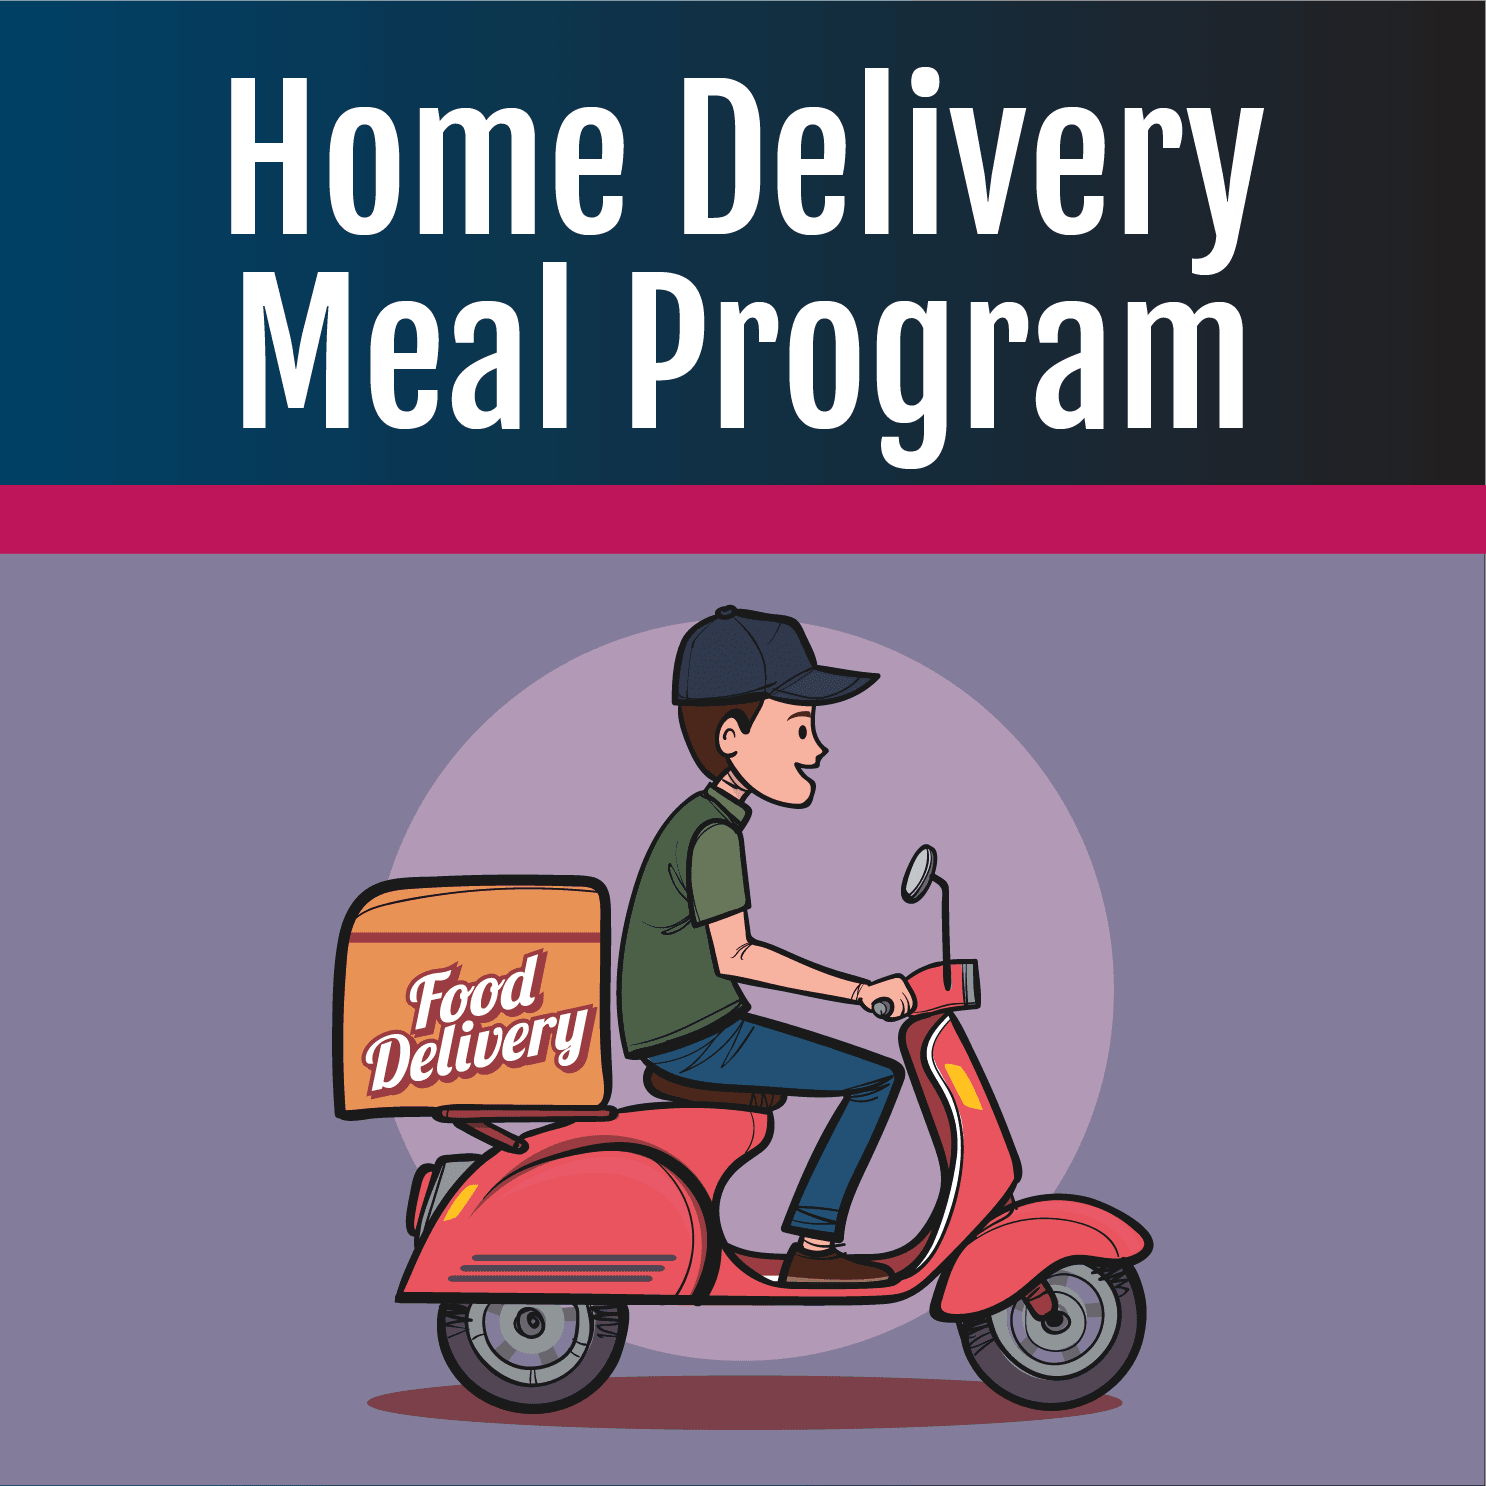 Home Delivery Meal Program